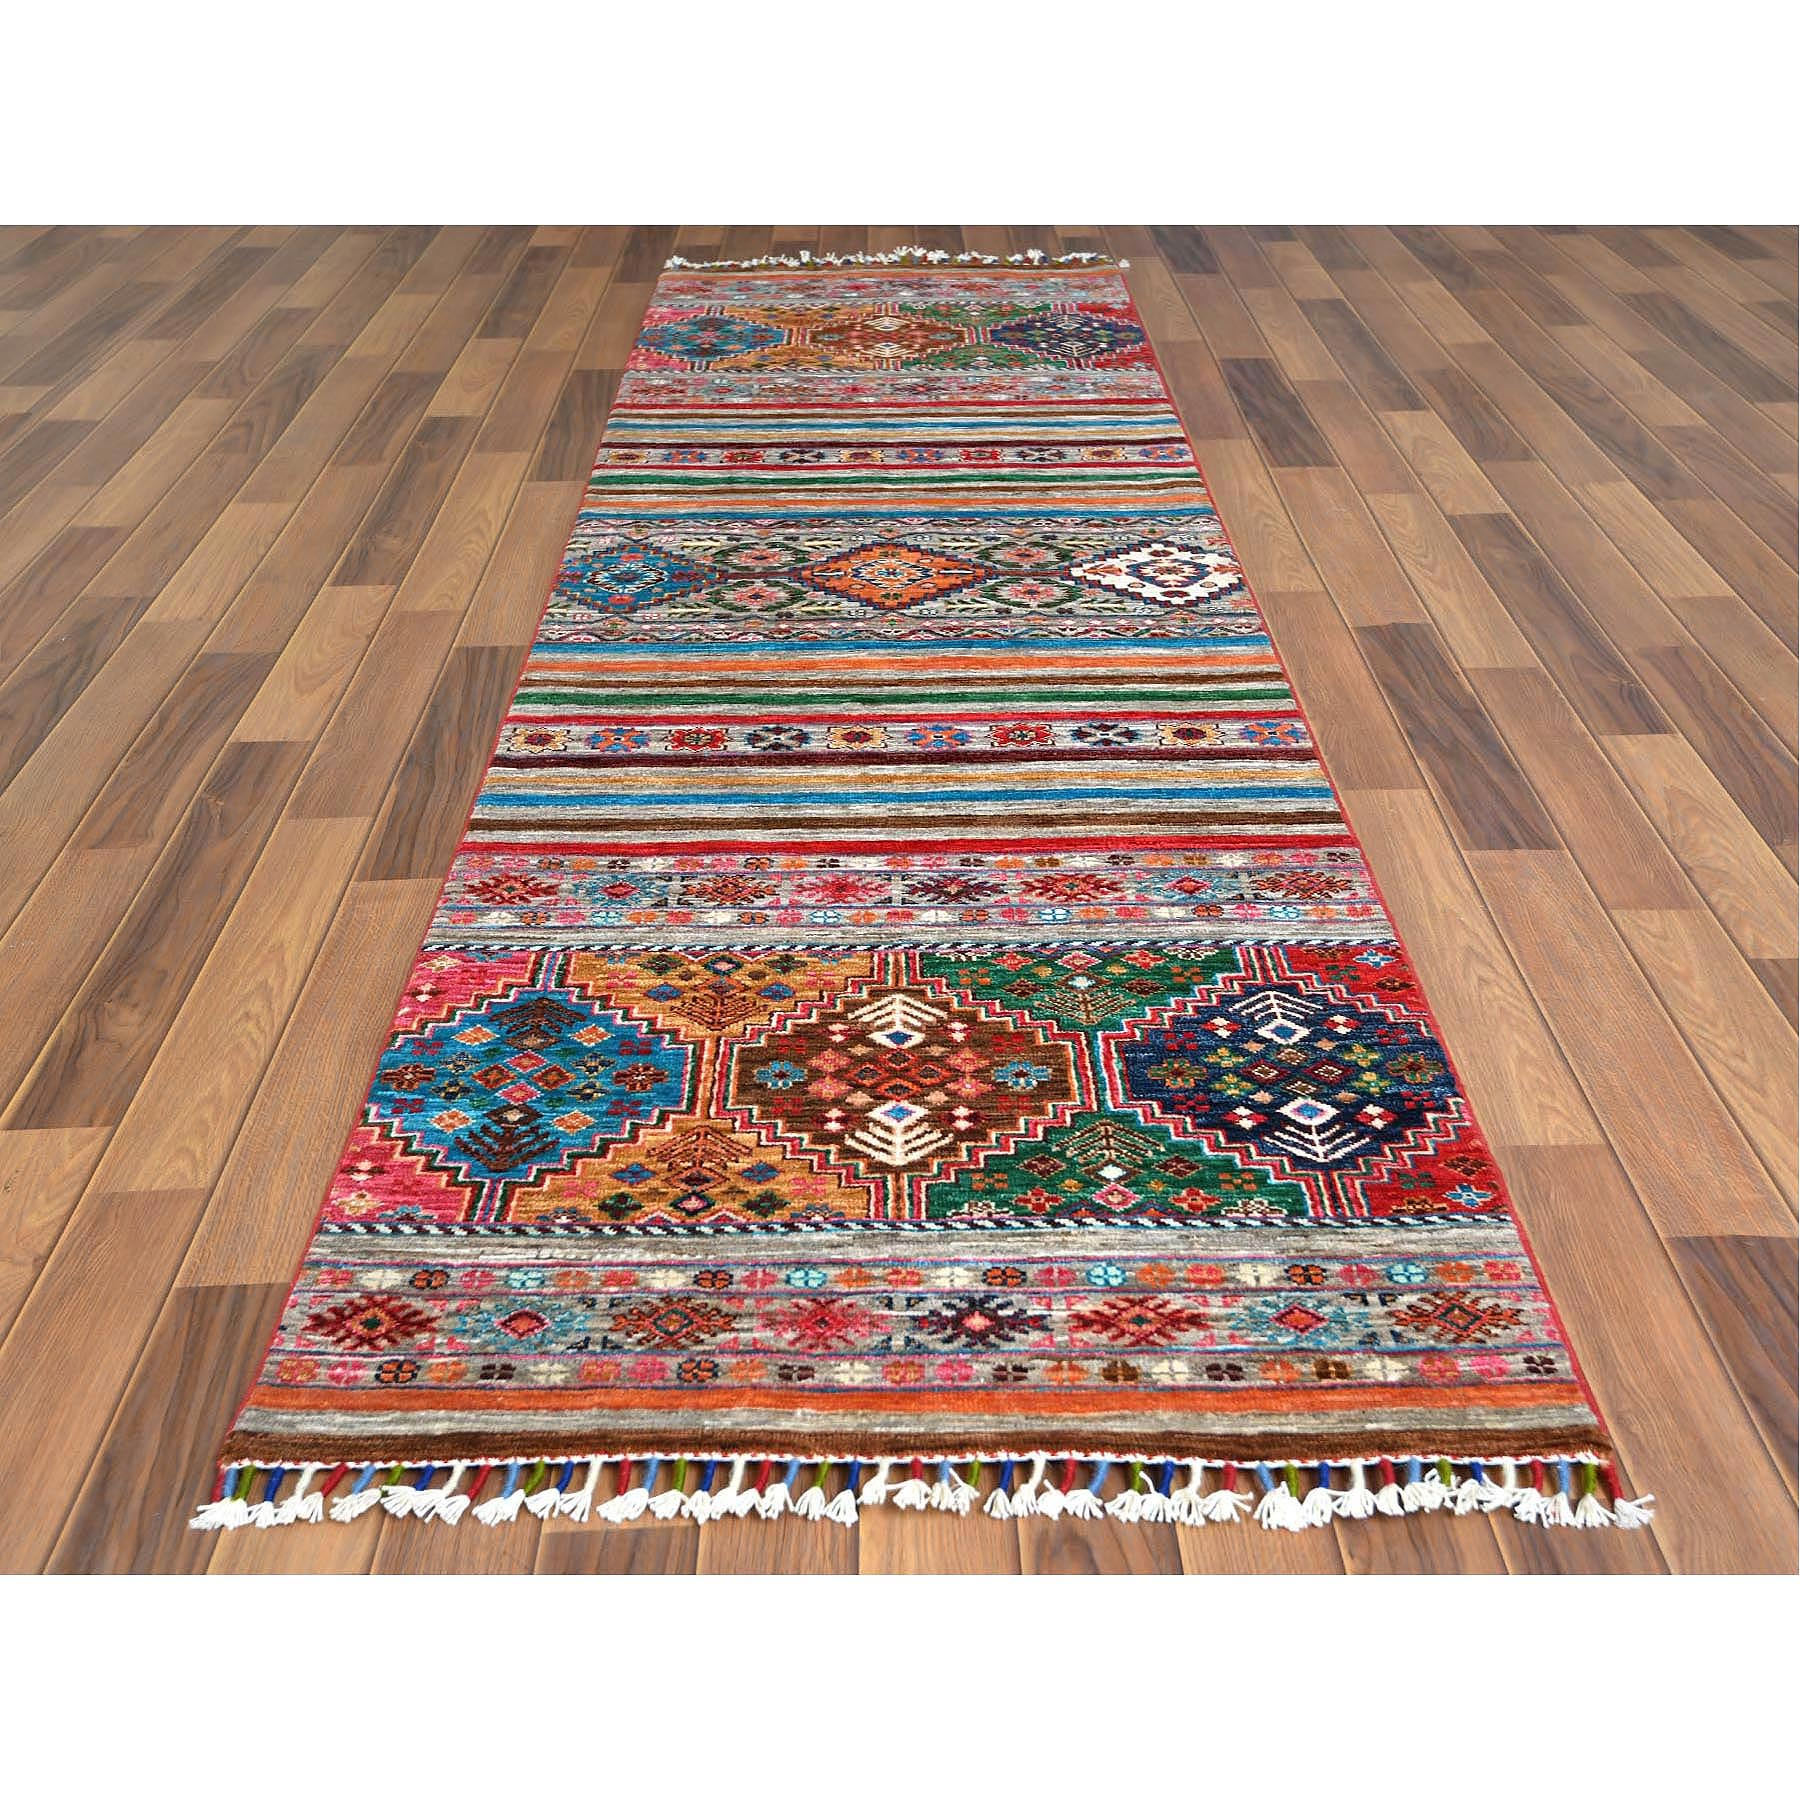 "2'9""x9'8"" Colorful Super Kazak Khorjin Design With Colorful Tassles Vibrant Wool Hand Knotted Oriental Runner Rug"